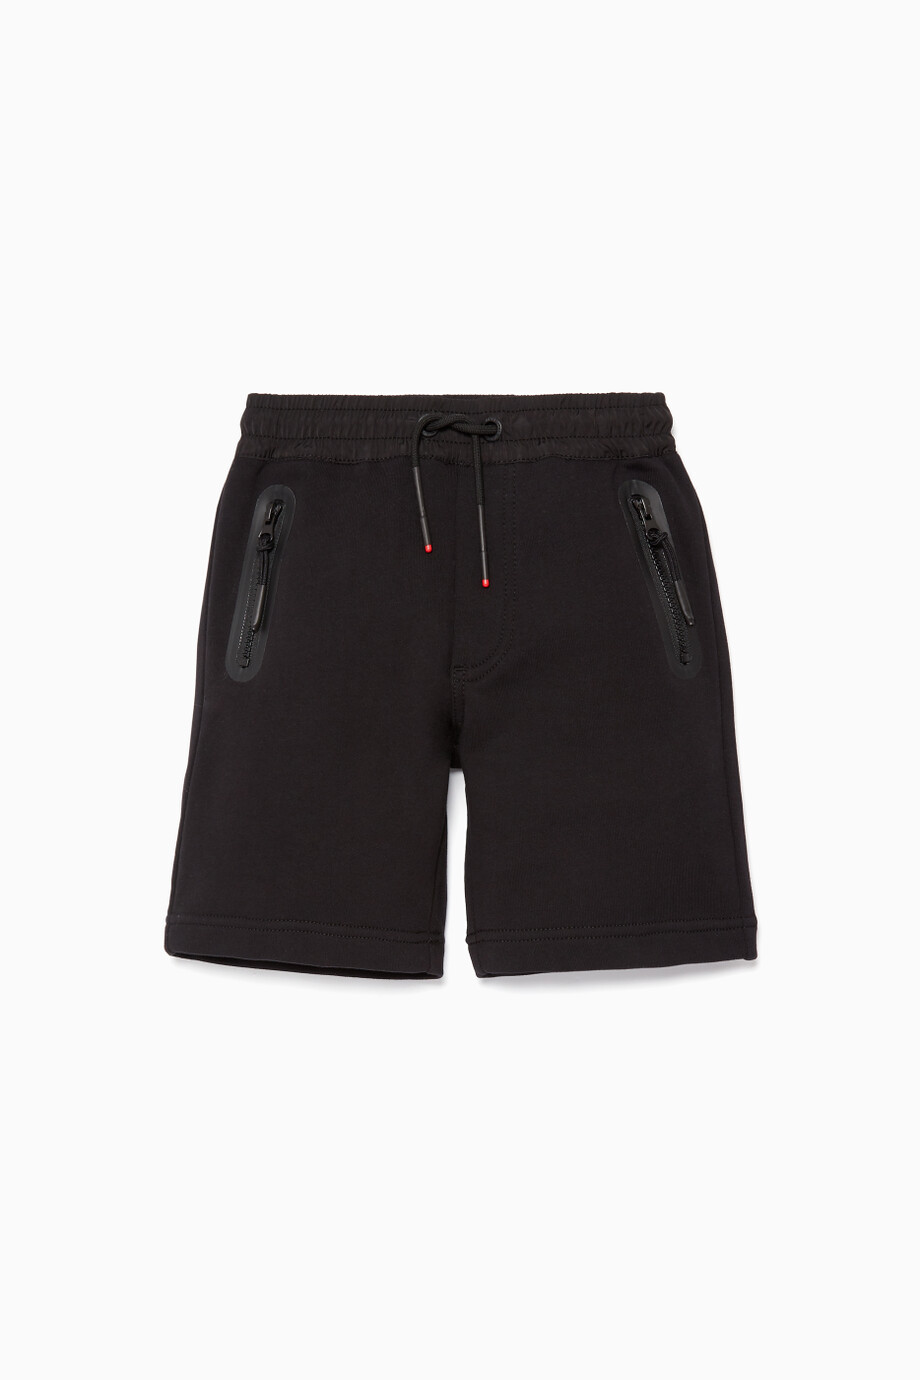 cb6081479 Shop Diesel Black Black Boys Drawstring Shorts for Kids | Ounass